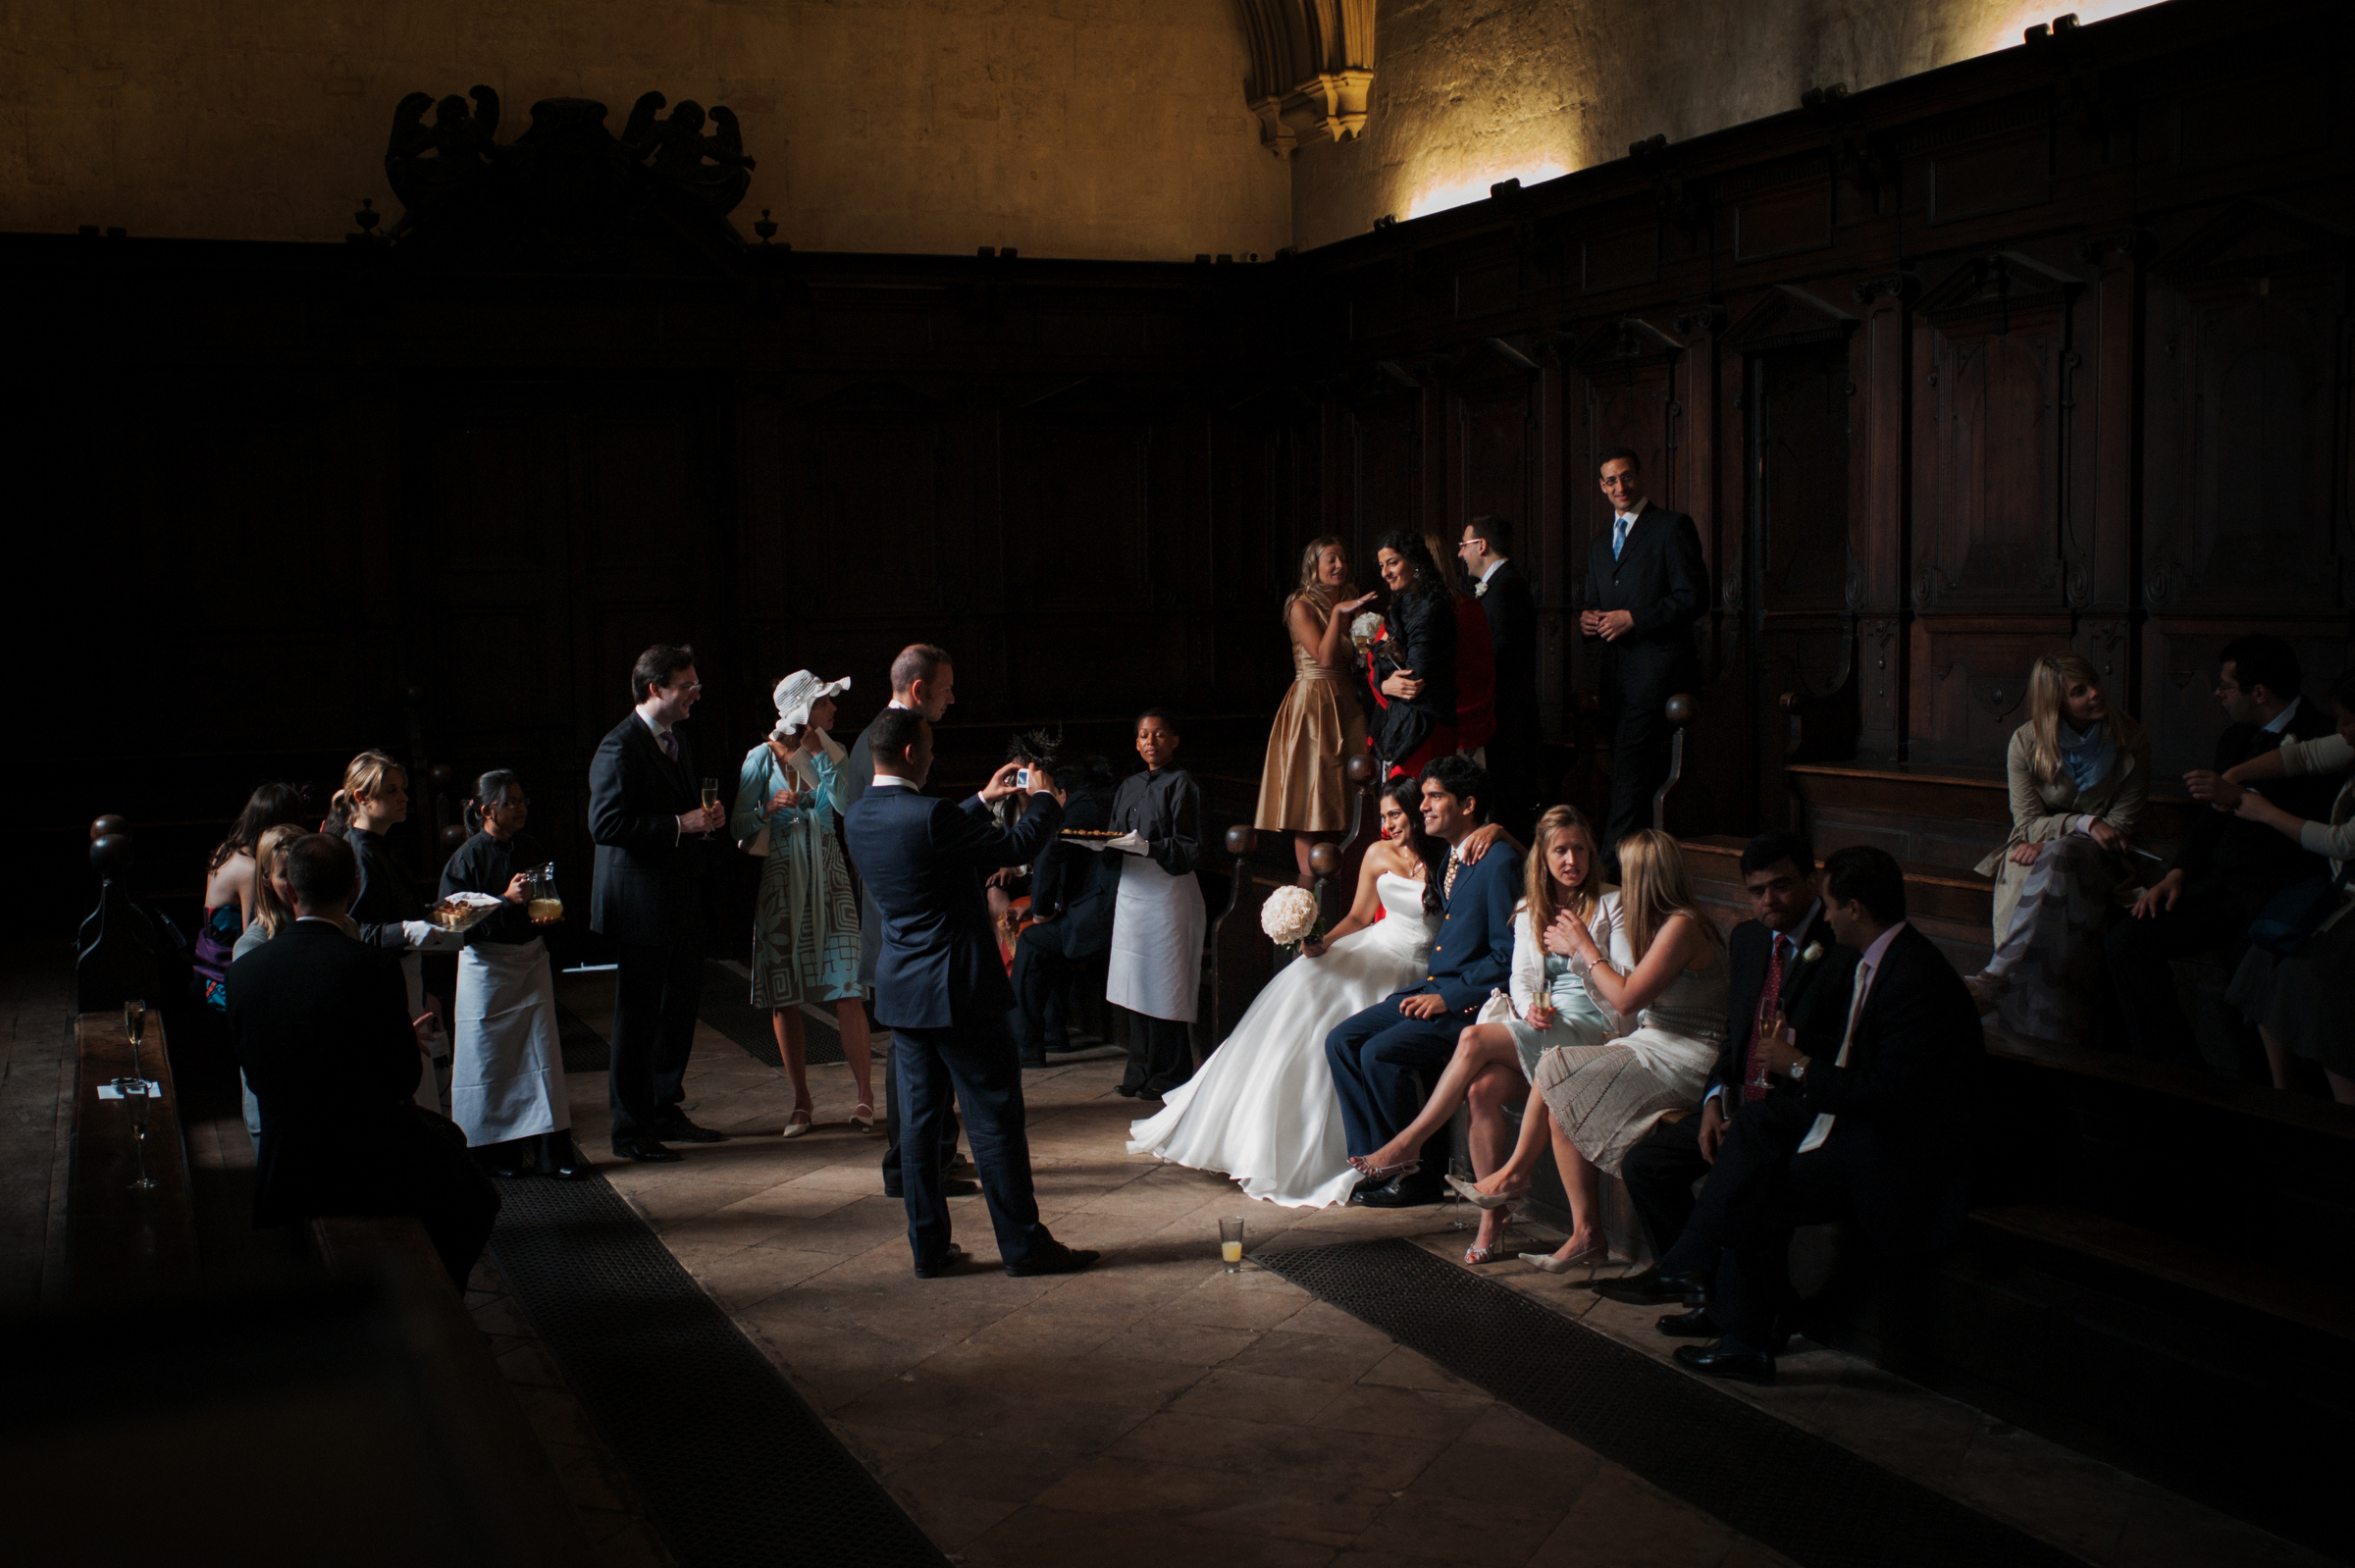 Documentary wedding group shot of guests and bridal party - photo by Jeff Ascough, London